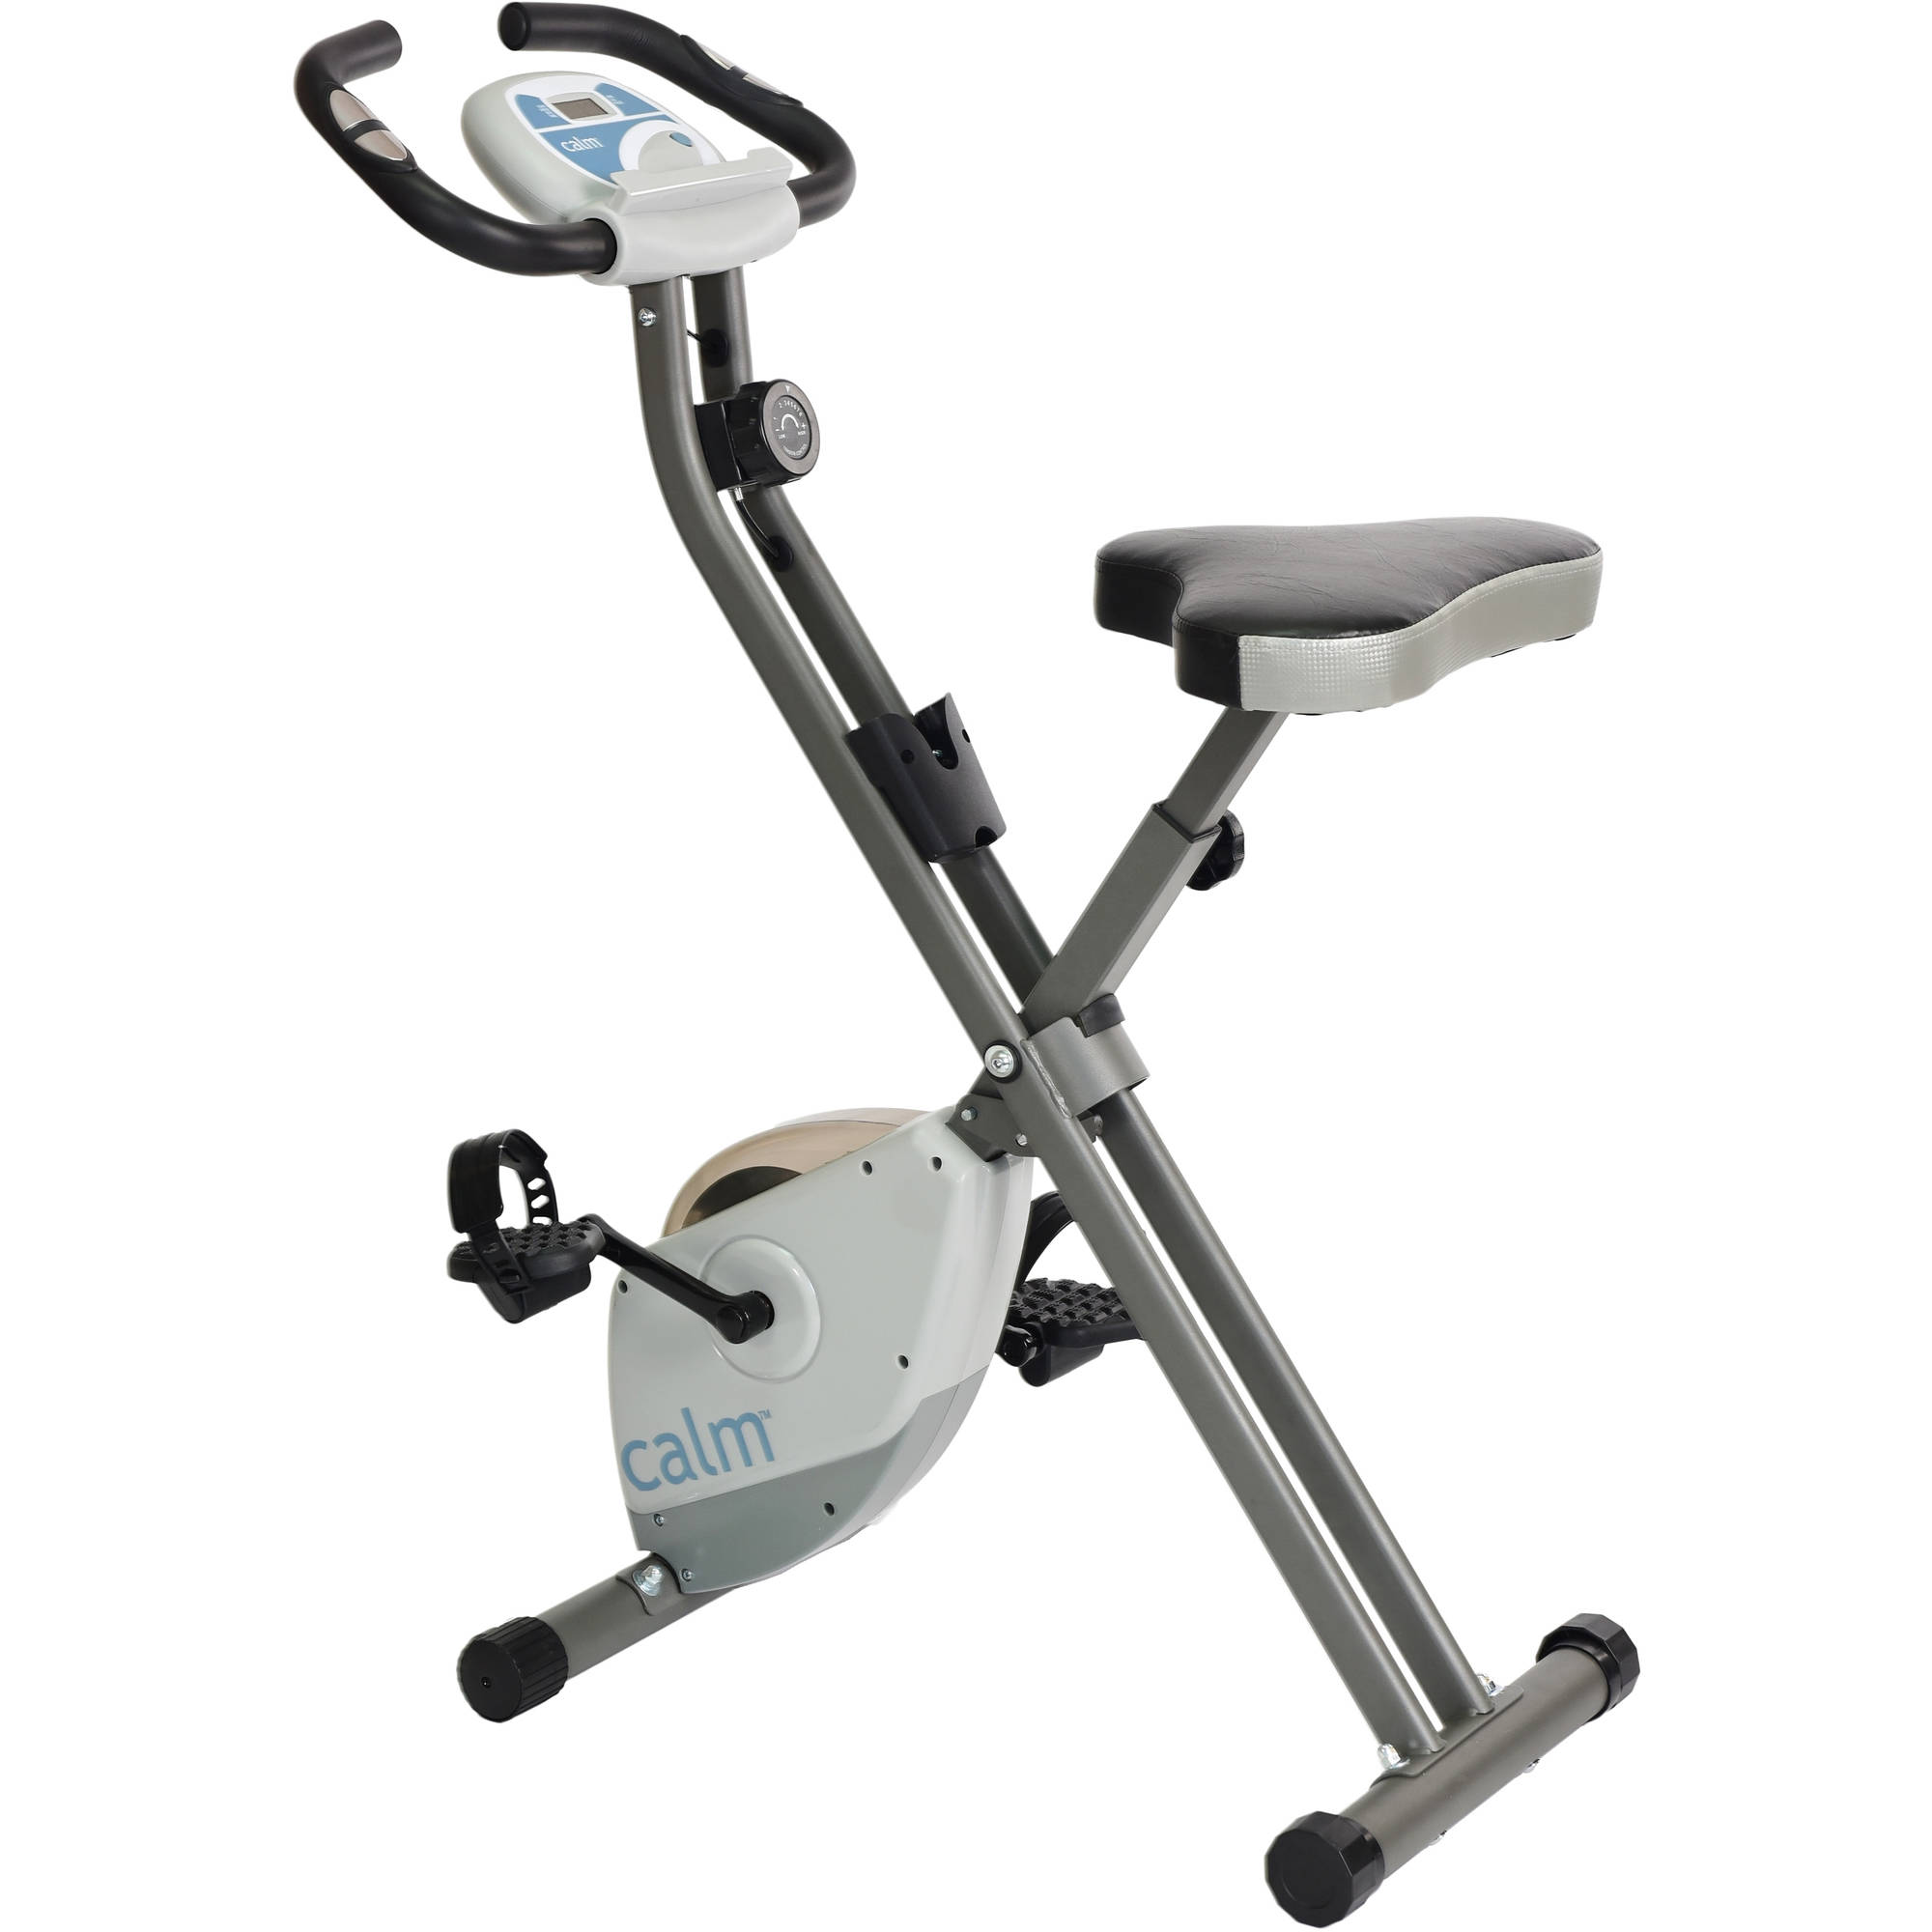 Exercise Bike Replacement Pedals: Folding Exercise Bike Compact Foldable Padded Seat Pulse